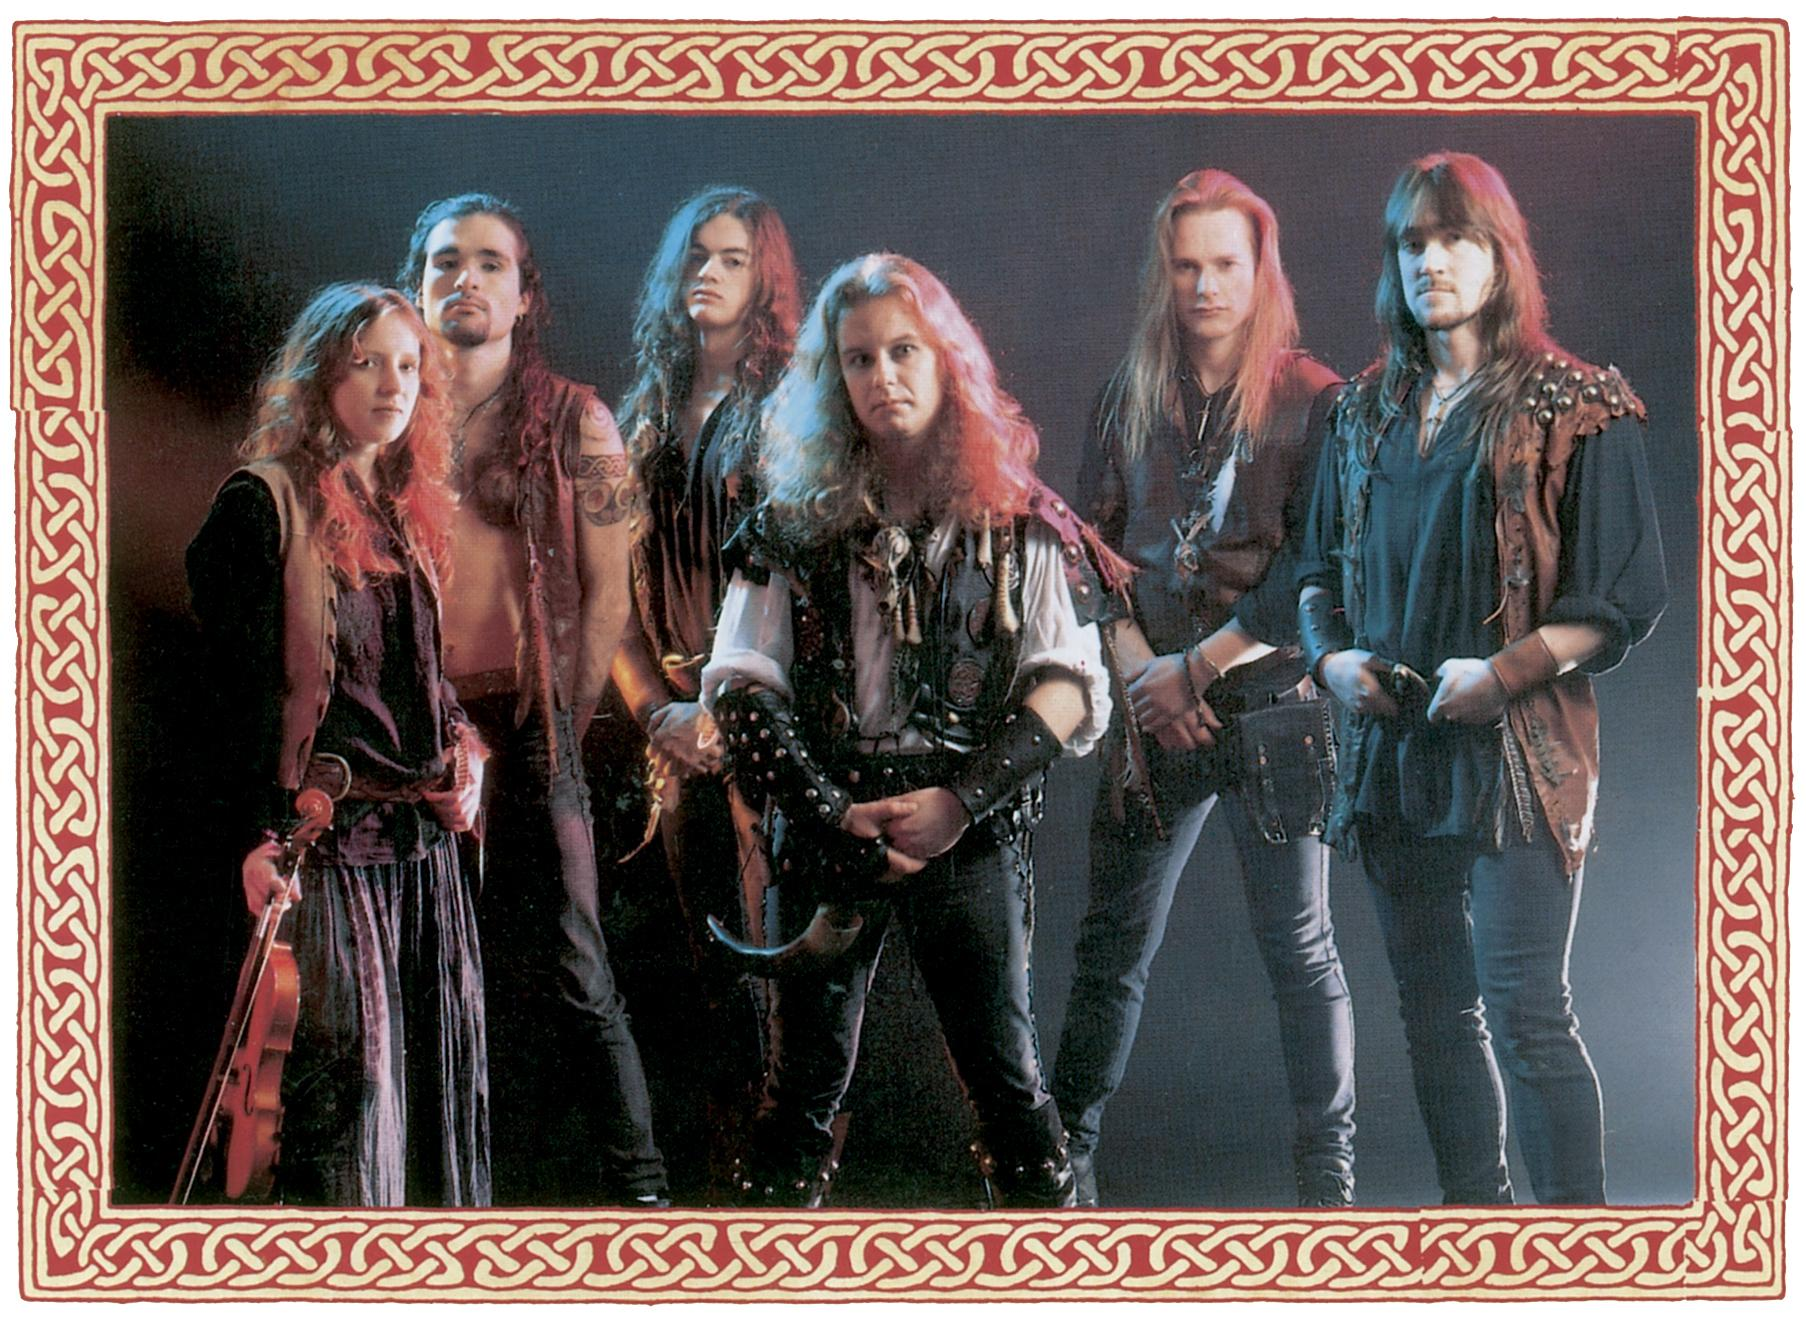 Skyclad band photo from the Noise days